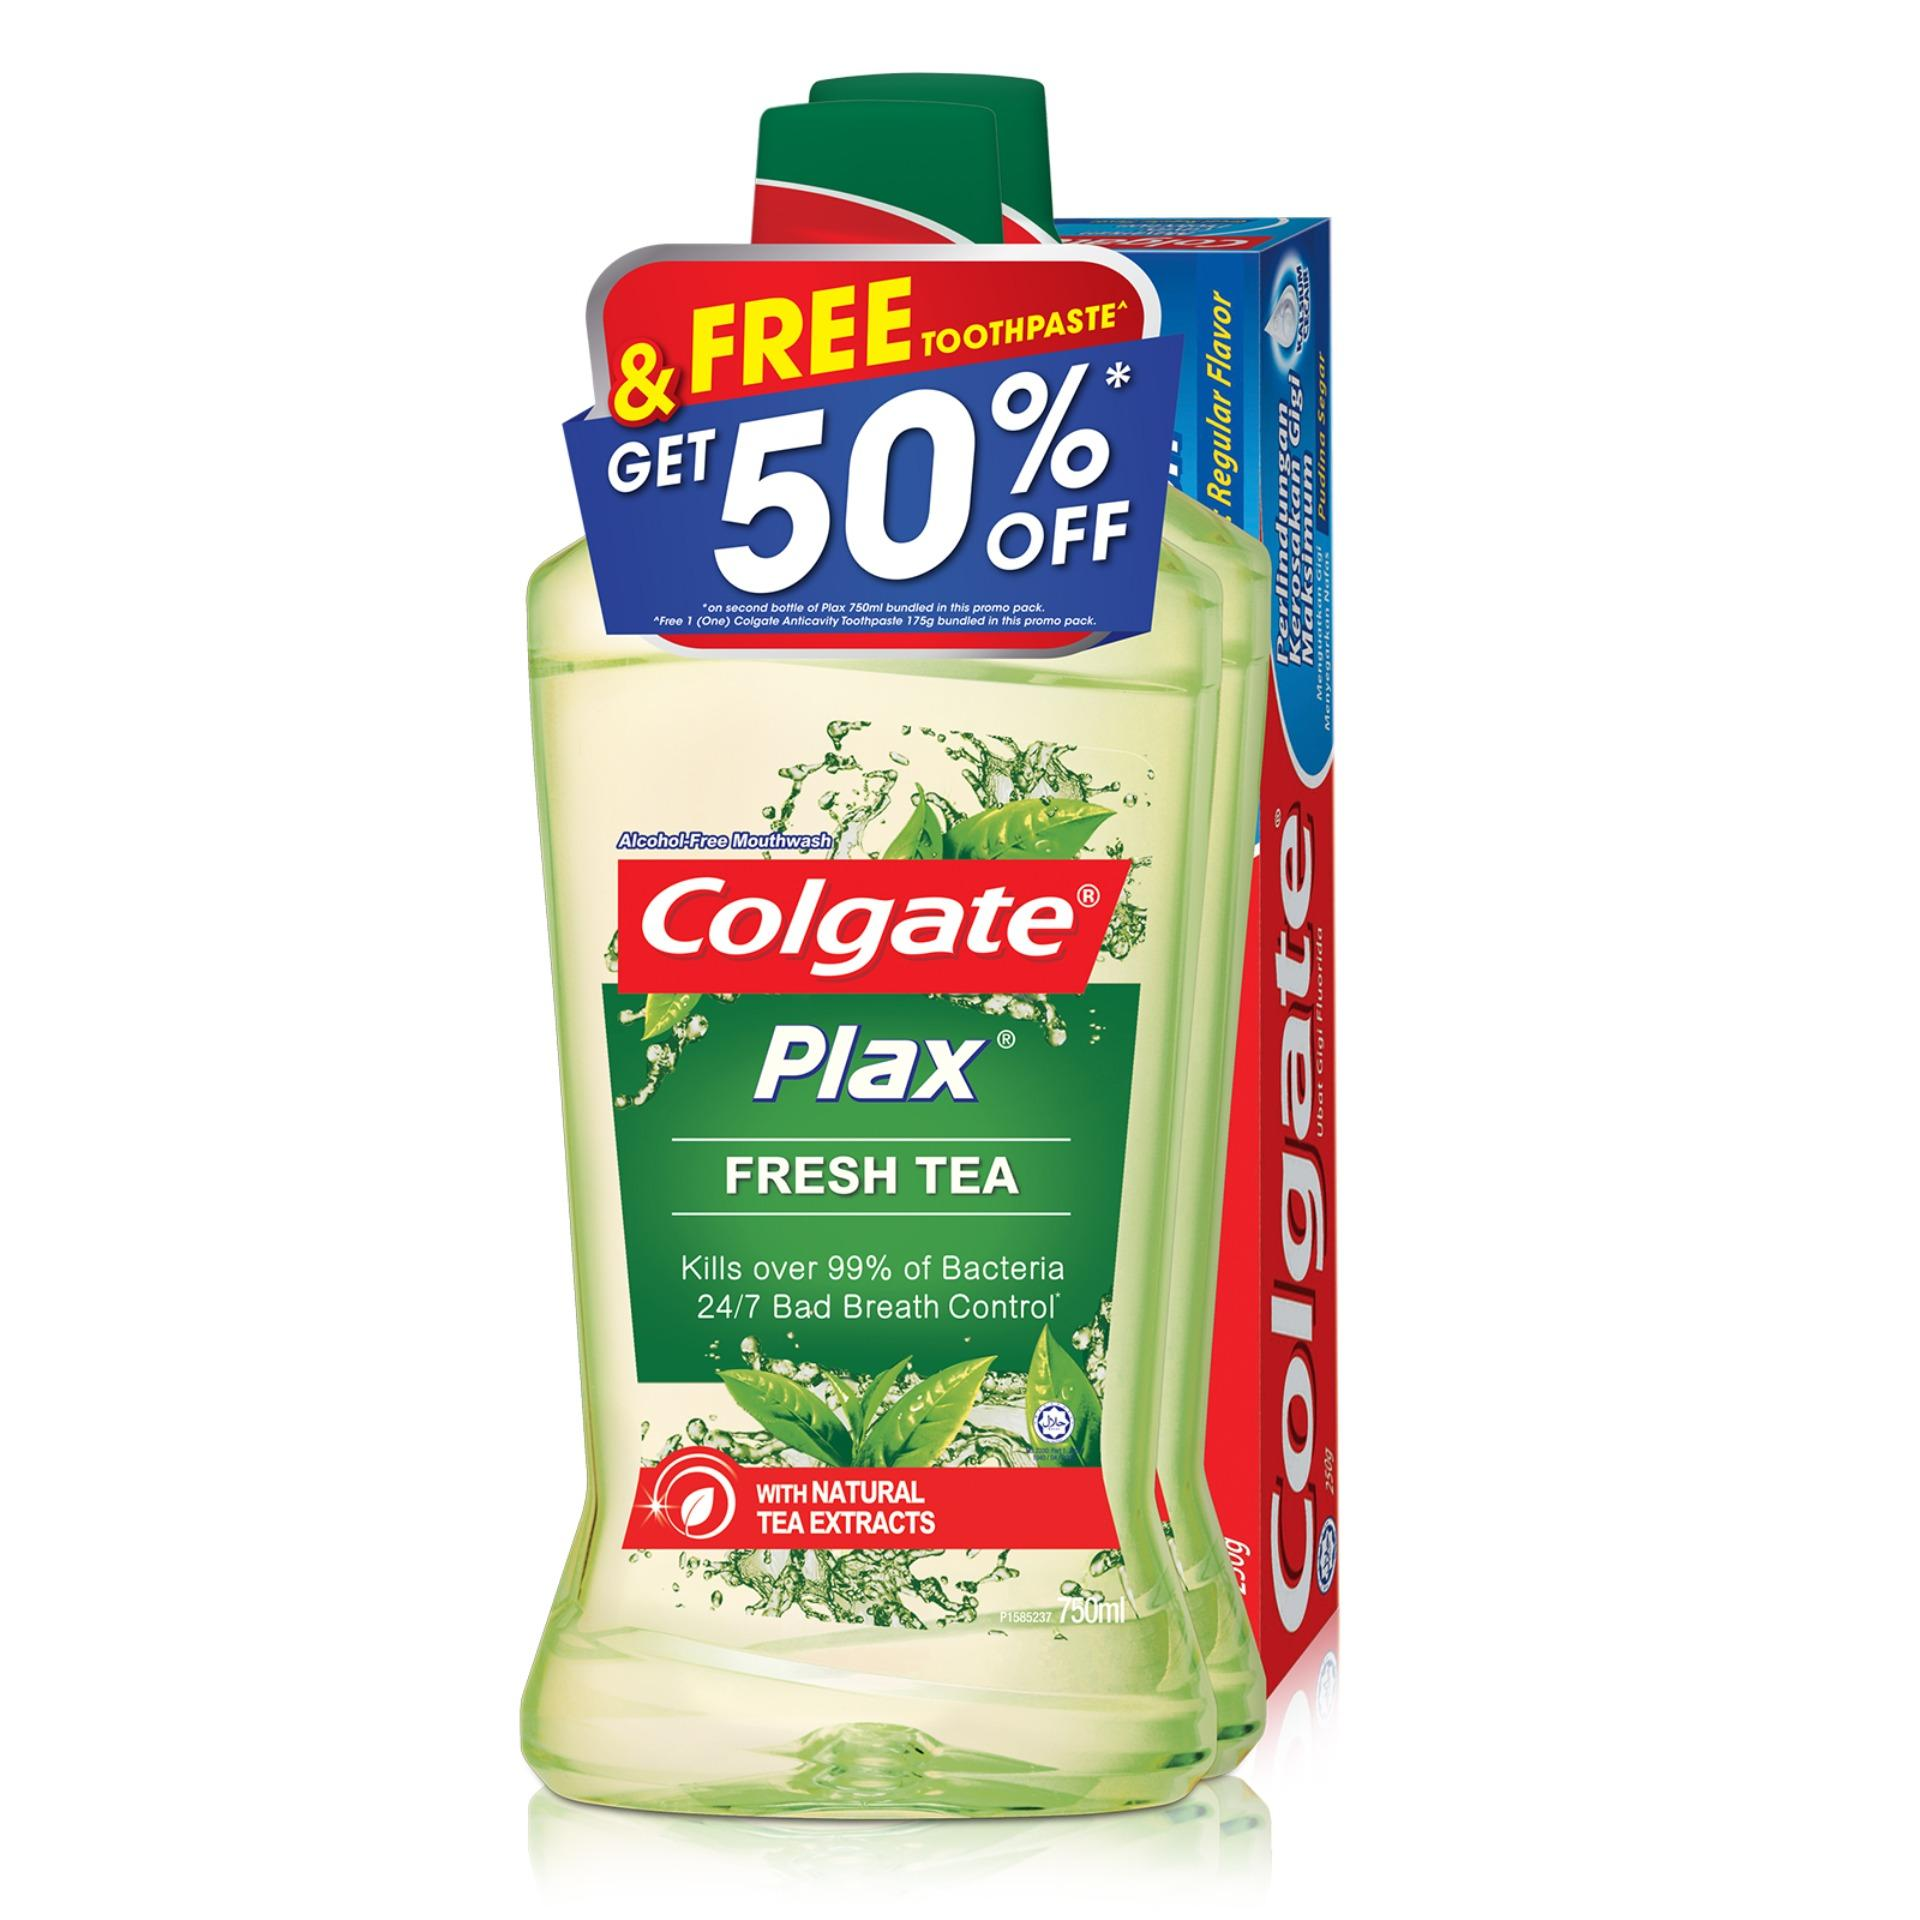 Colgate Plax Fresh Tea Mouthwash 750Ml Twinpack Free Colgate 175G Toothpaste Reviews